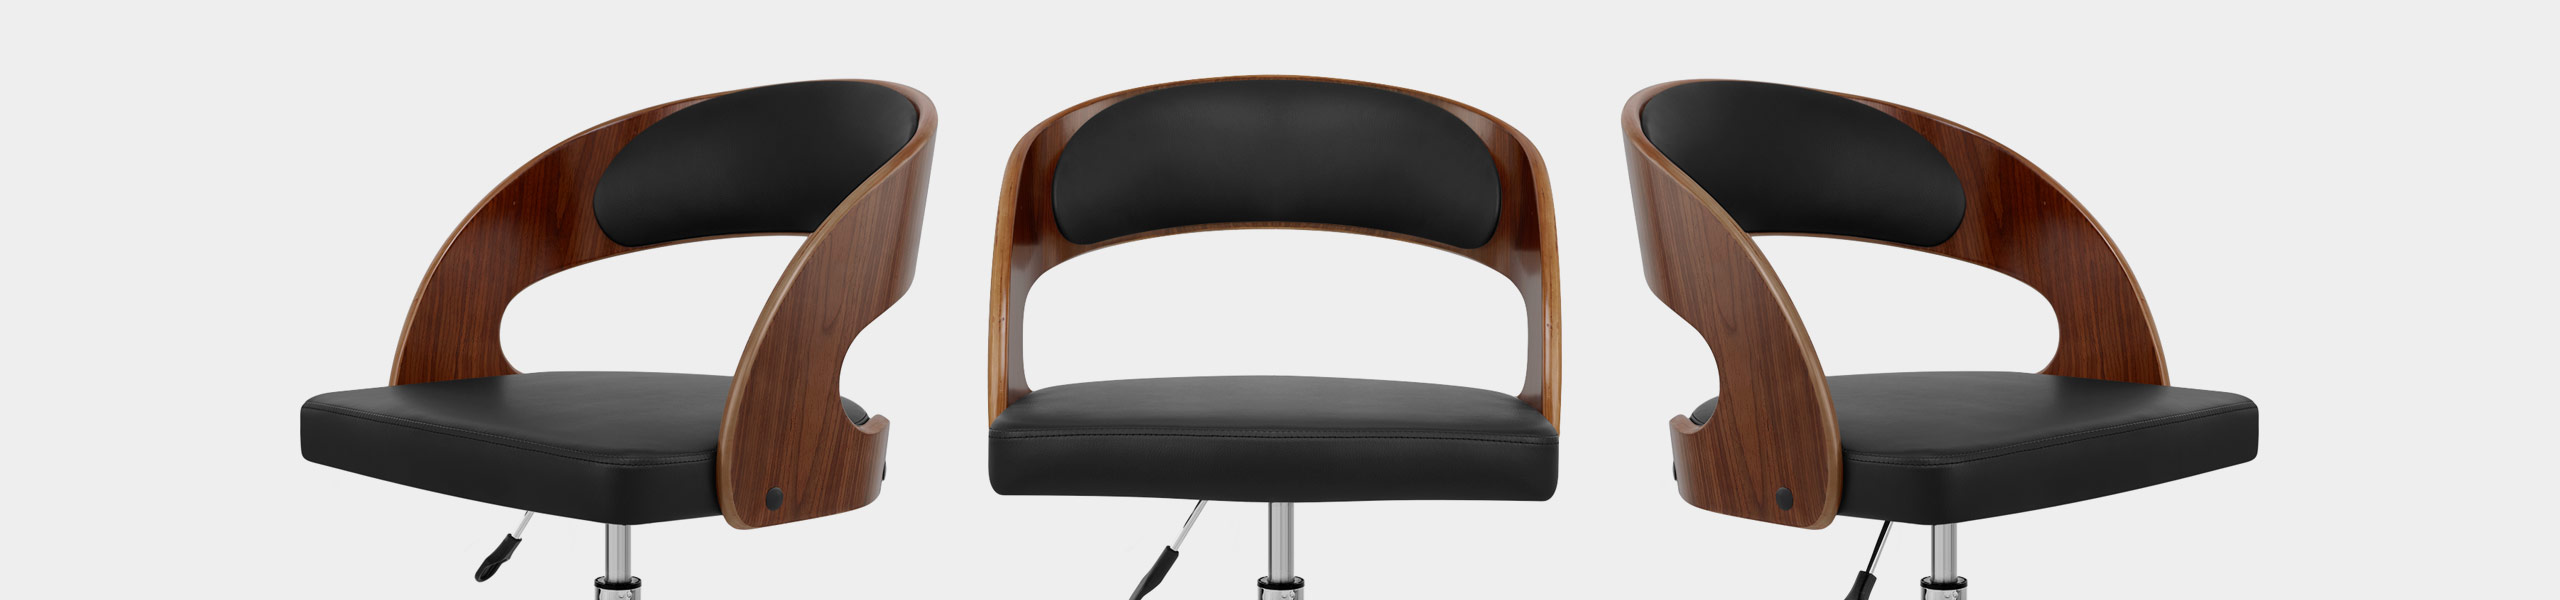 Evelyn Chair Walnut & Black Video Banner